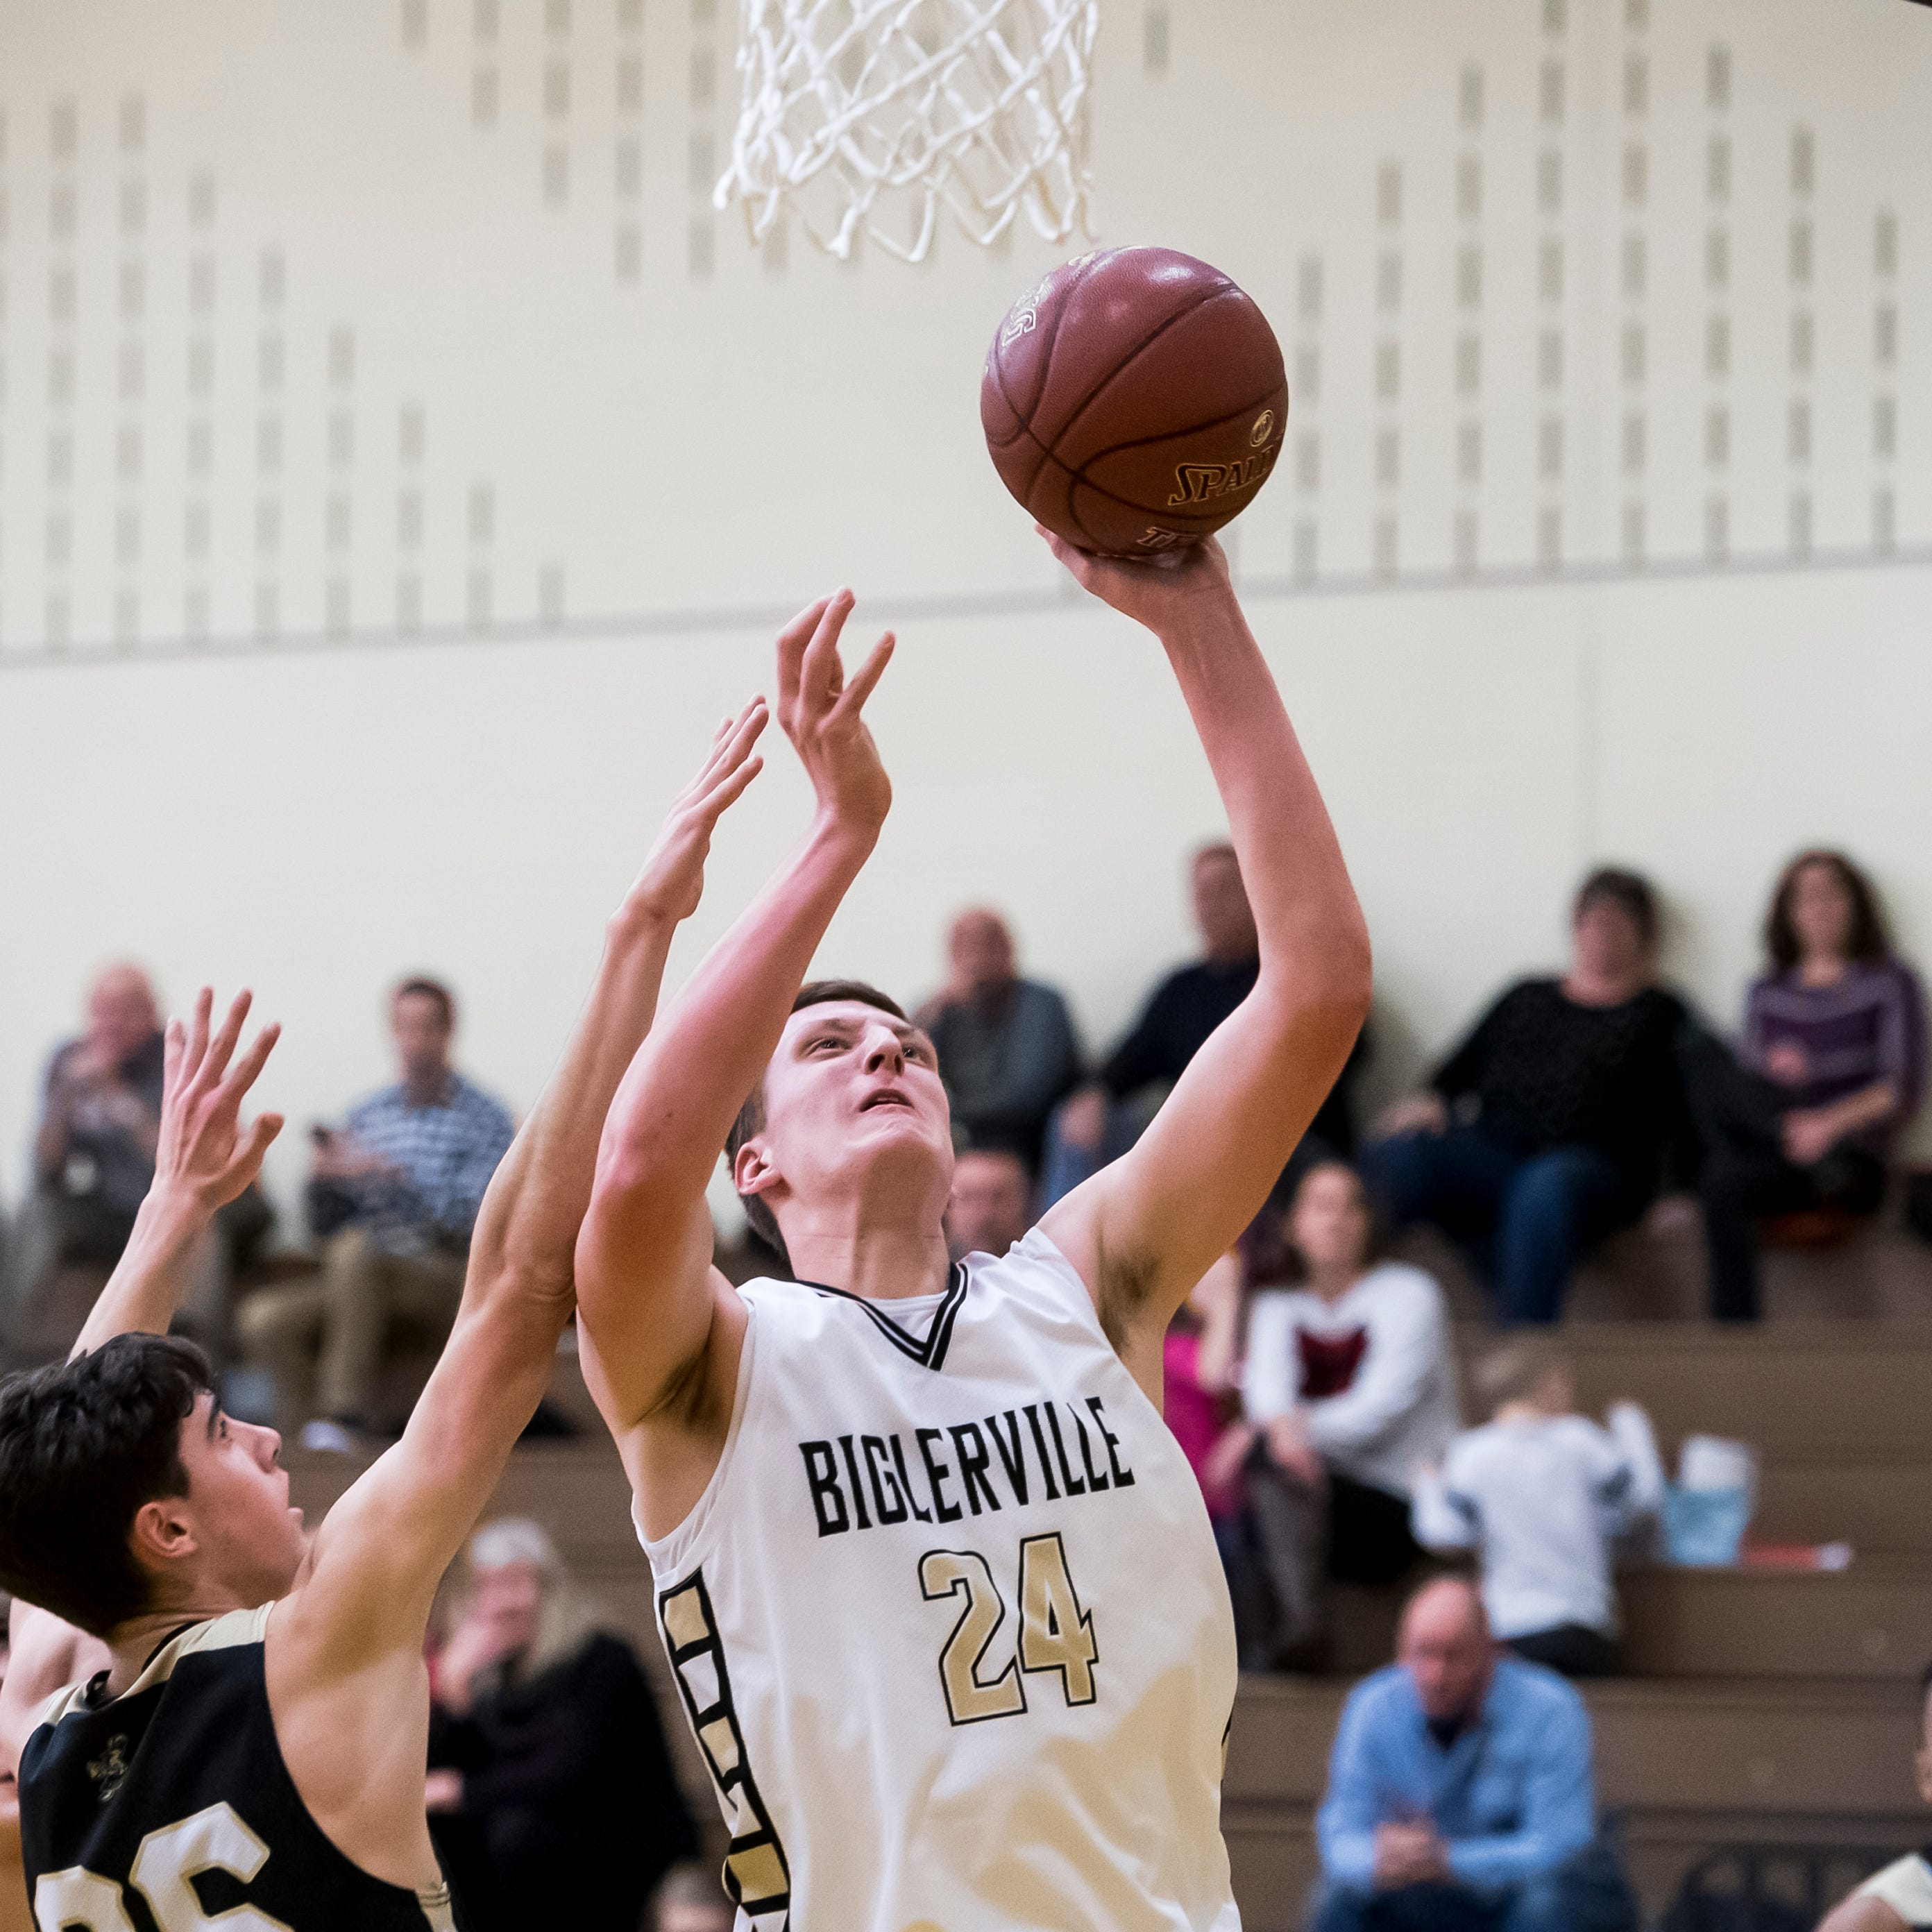 'Fired up': Biglerville drops Delone for statement win in boys' hoops